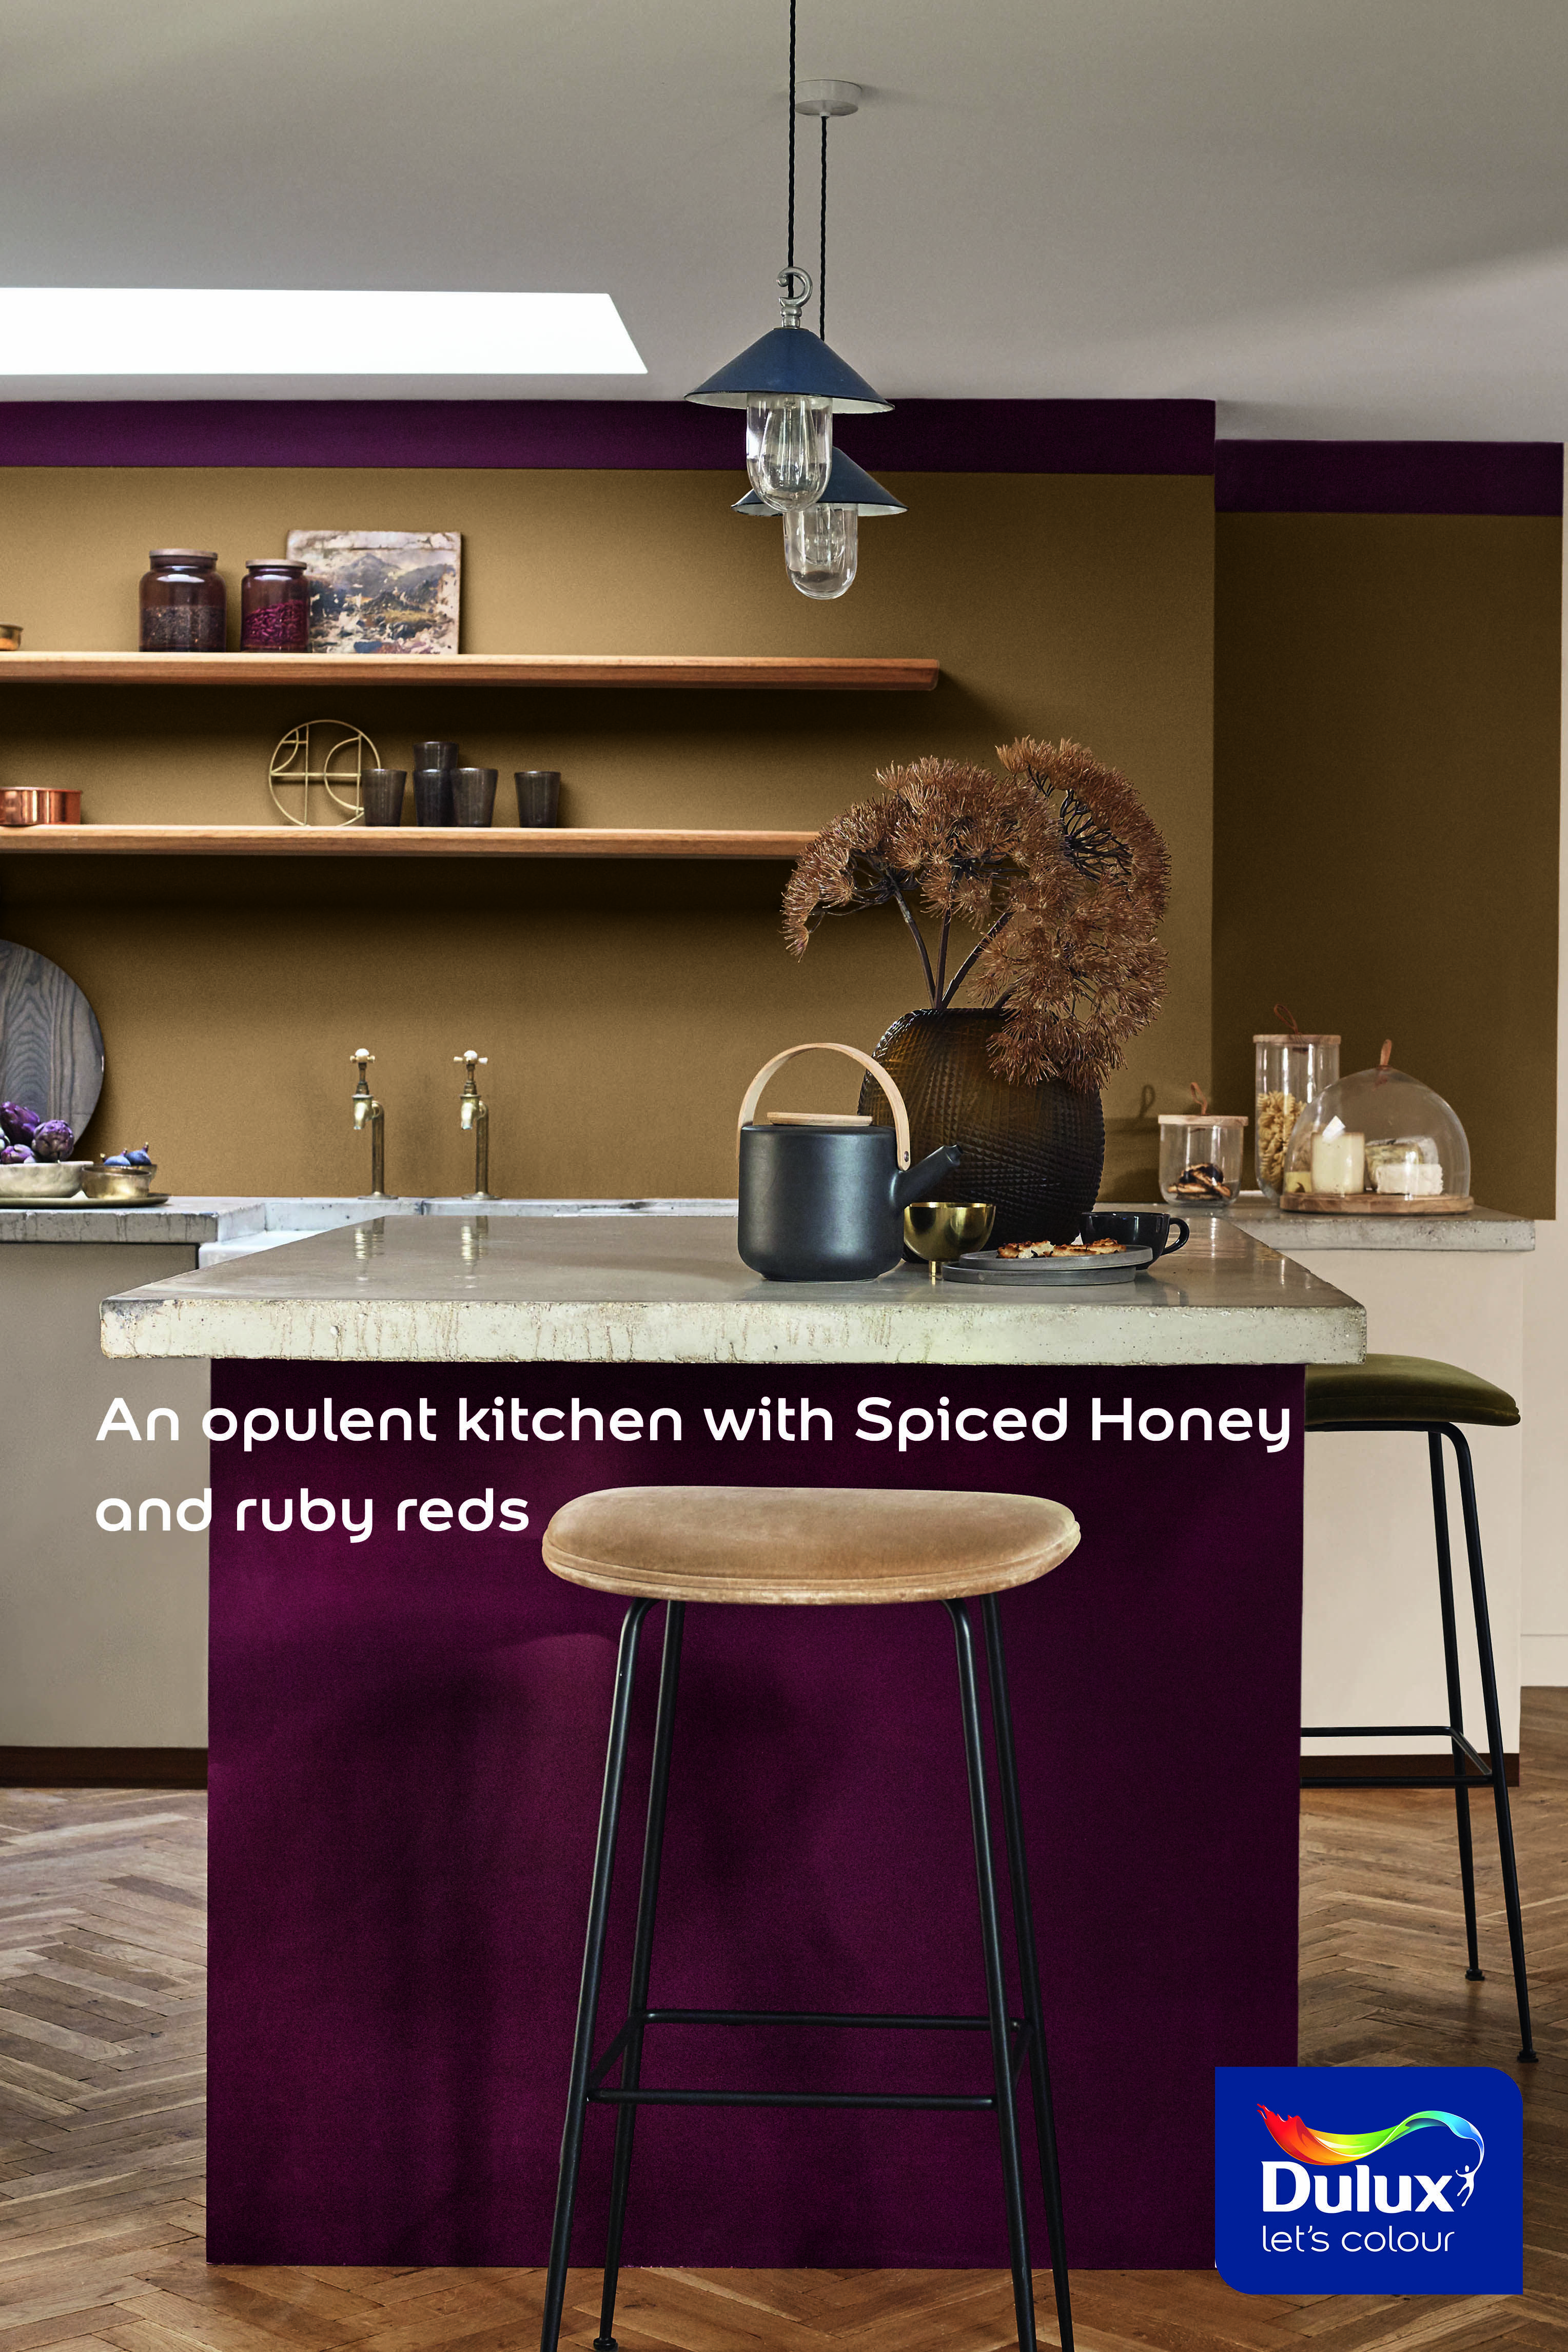 Dulux Spiced Honey Colour of the Year 2019 creates an opulent